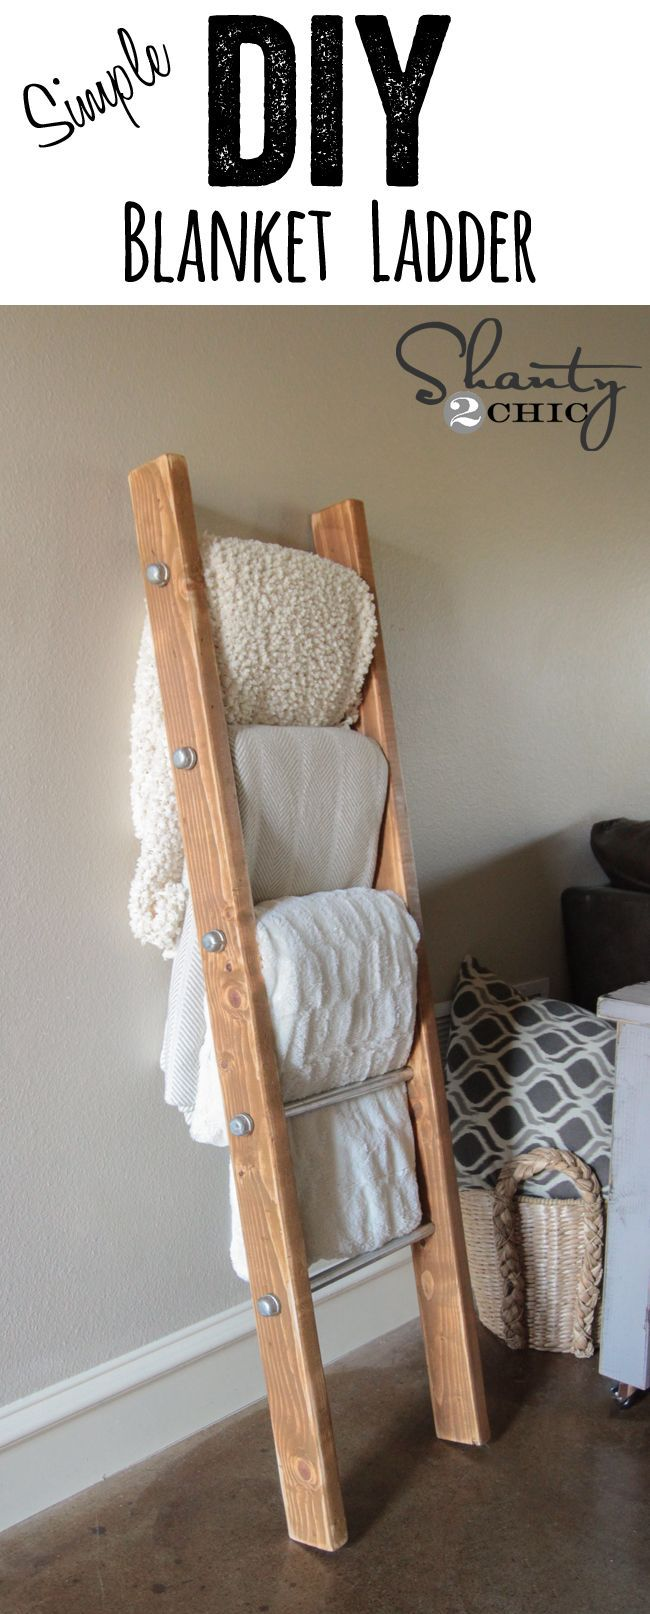 DIY Wood and Metal Pipe Blanket Ladder… Seriously SO simple and so cute! www.shanty-2-chic.com: